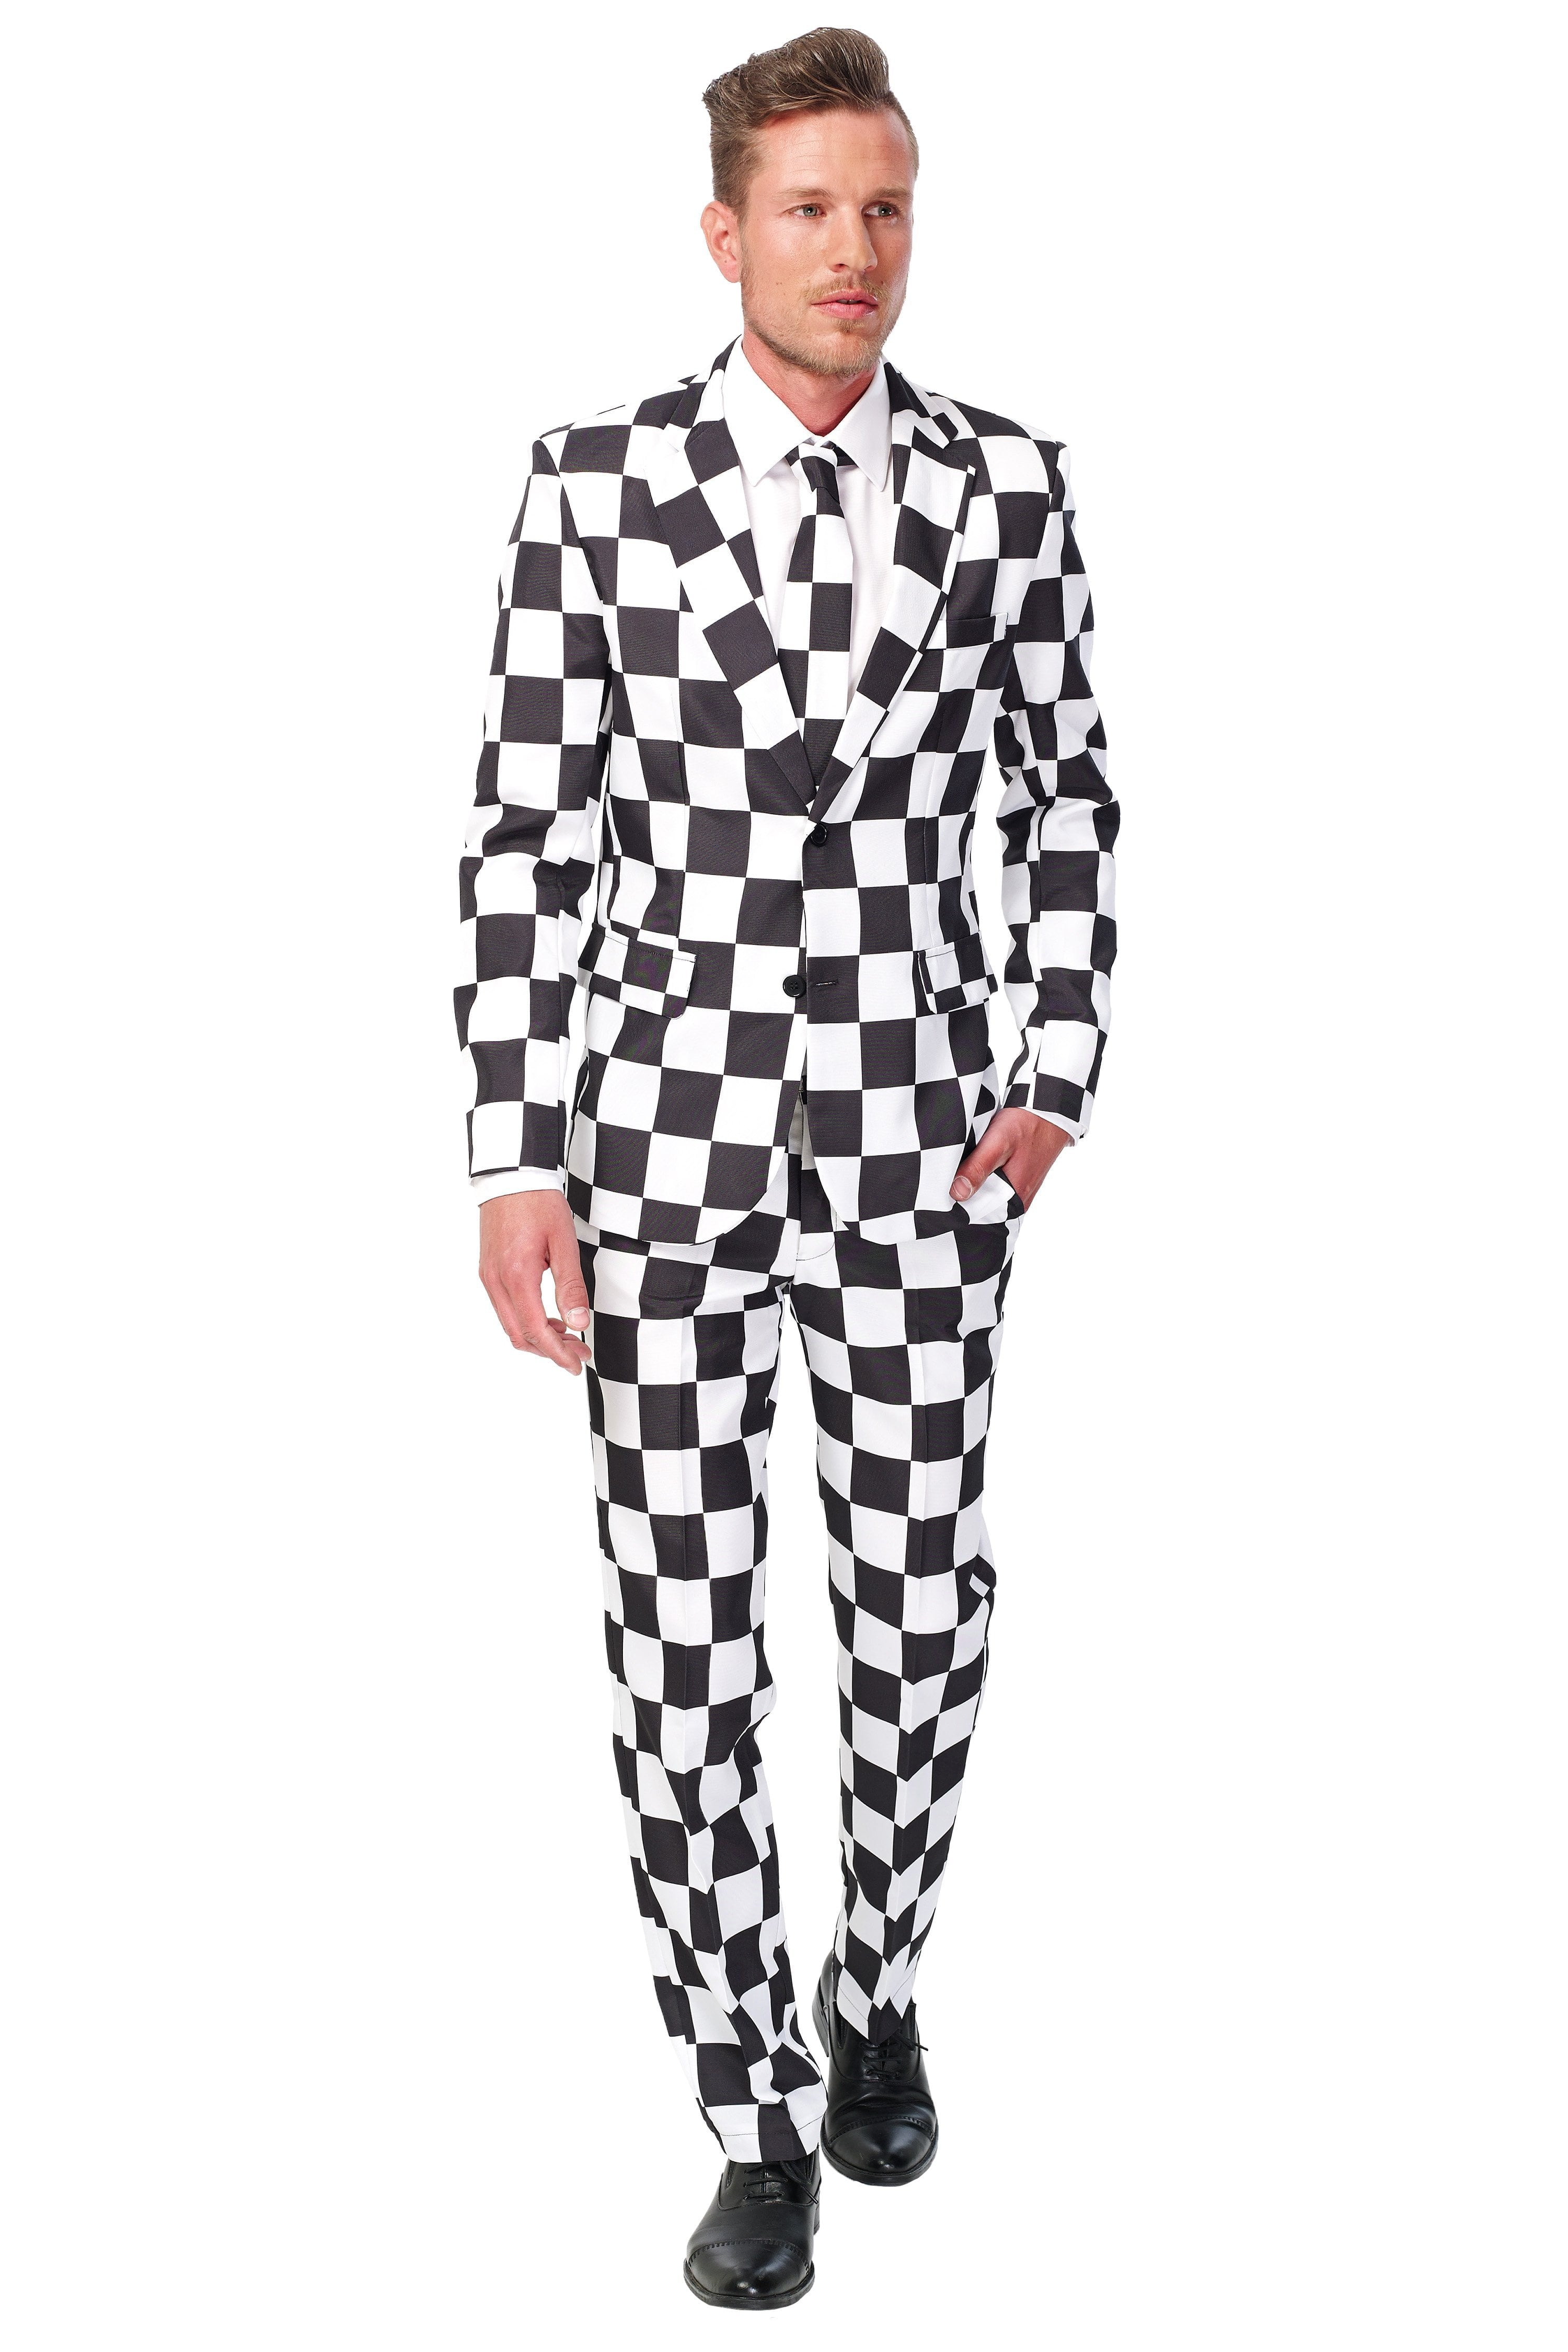 Suitmeister Black and White Suit